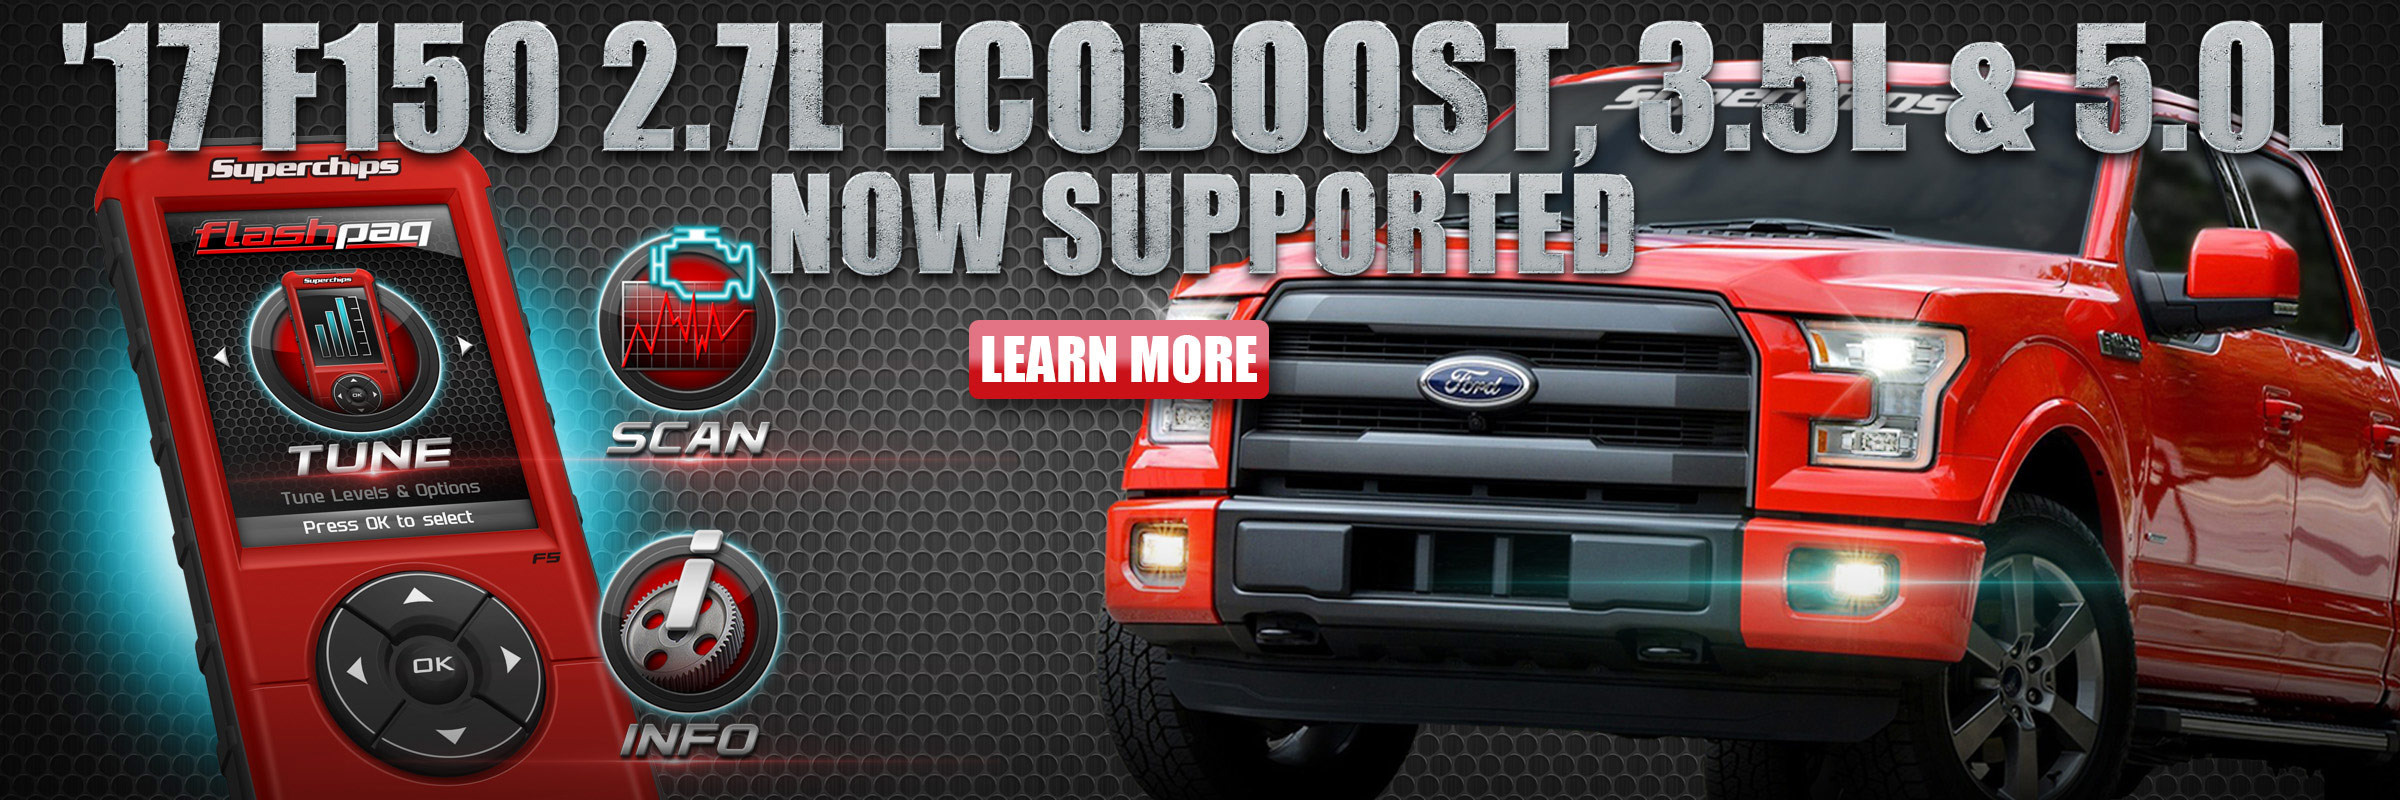 Ford F 250 Diesel Exhaust System Diagram Car Tuning Besides 2002 Ford